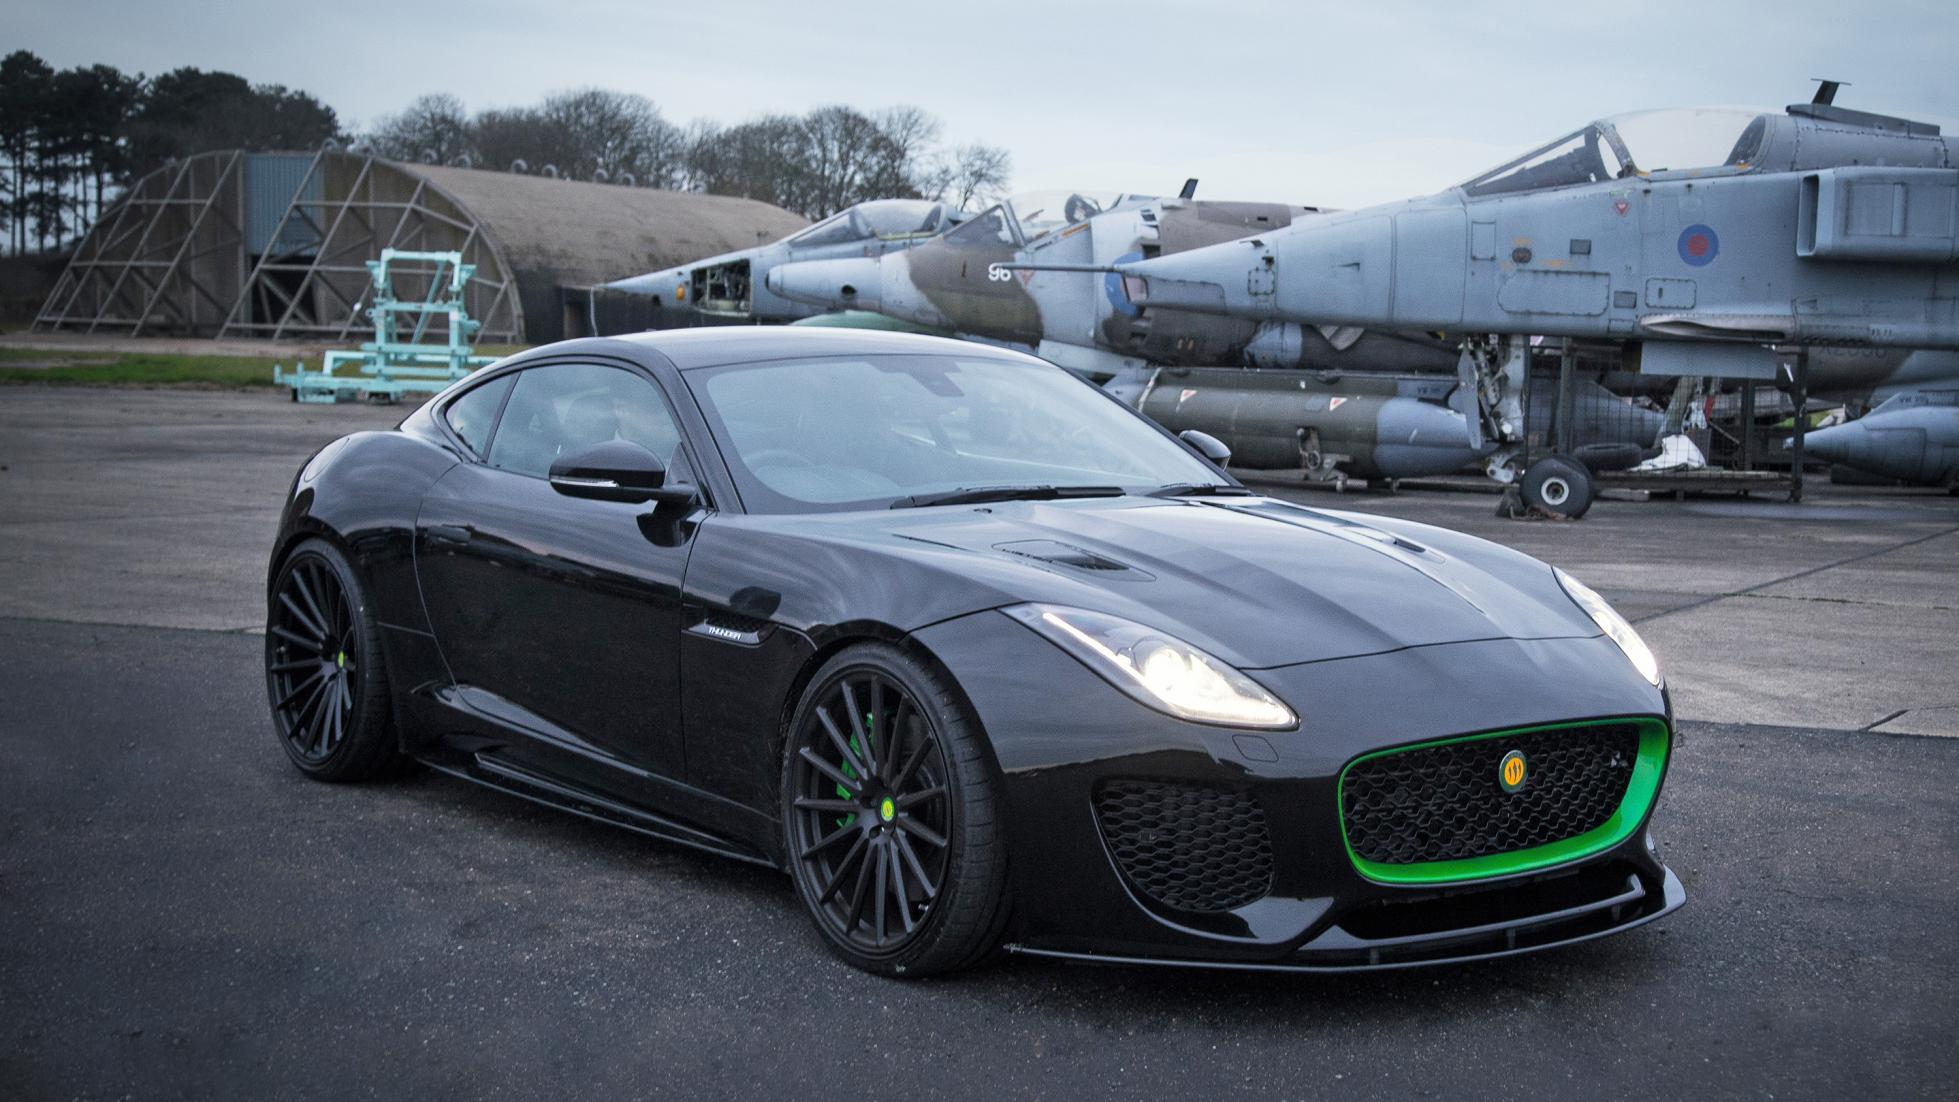 Lister's Thunder sports car takes the F-Type to a new level.